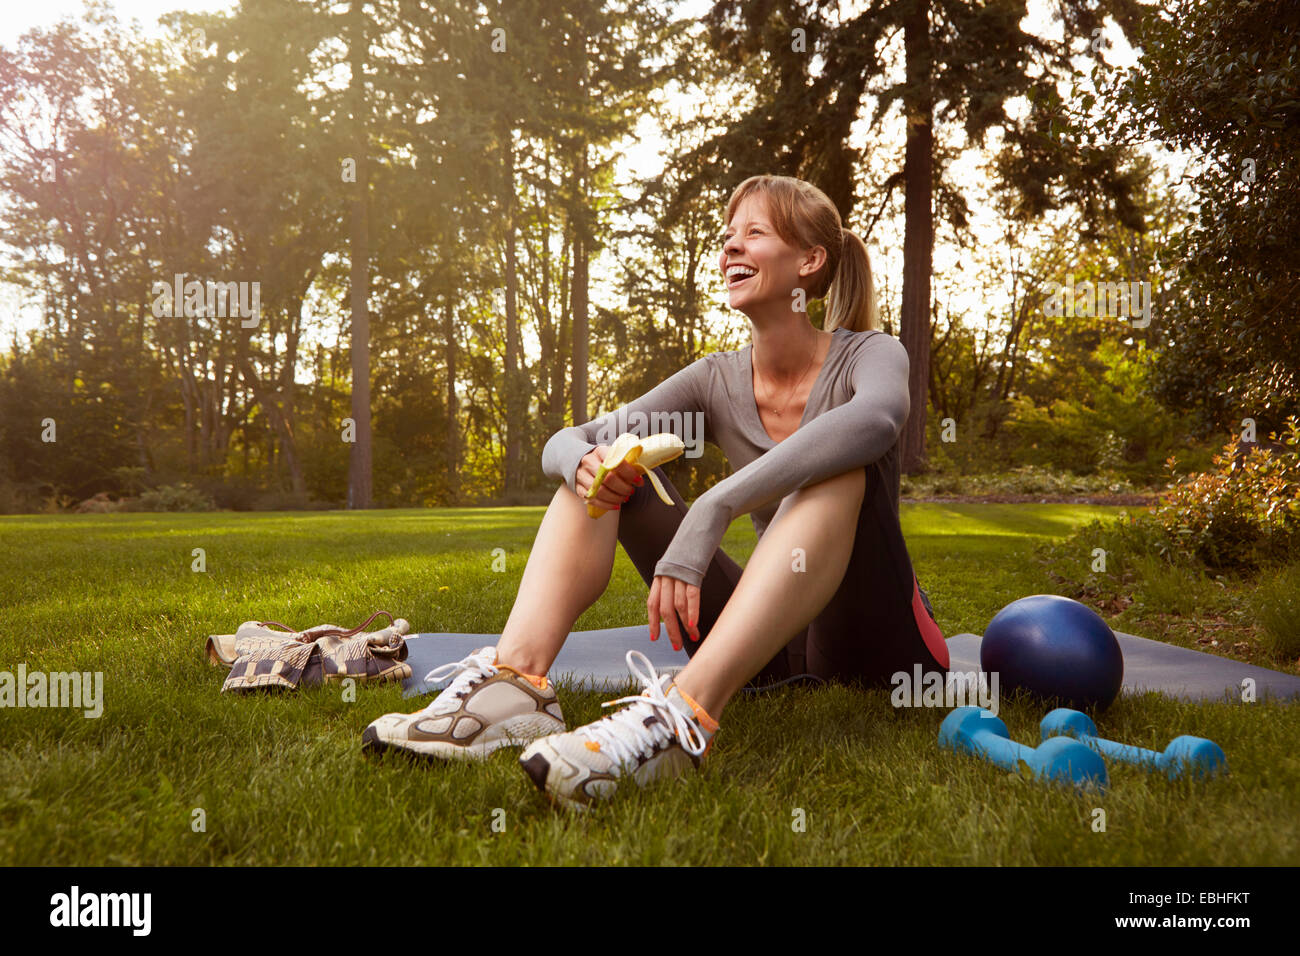 Mid adult woman sitting in park taking exercise break - Stock Image